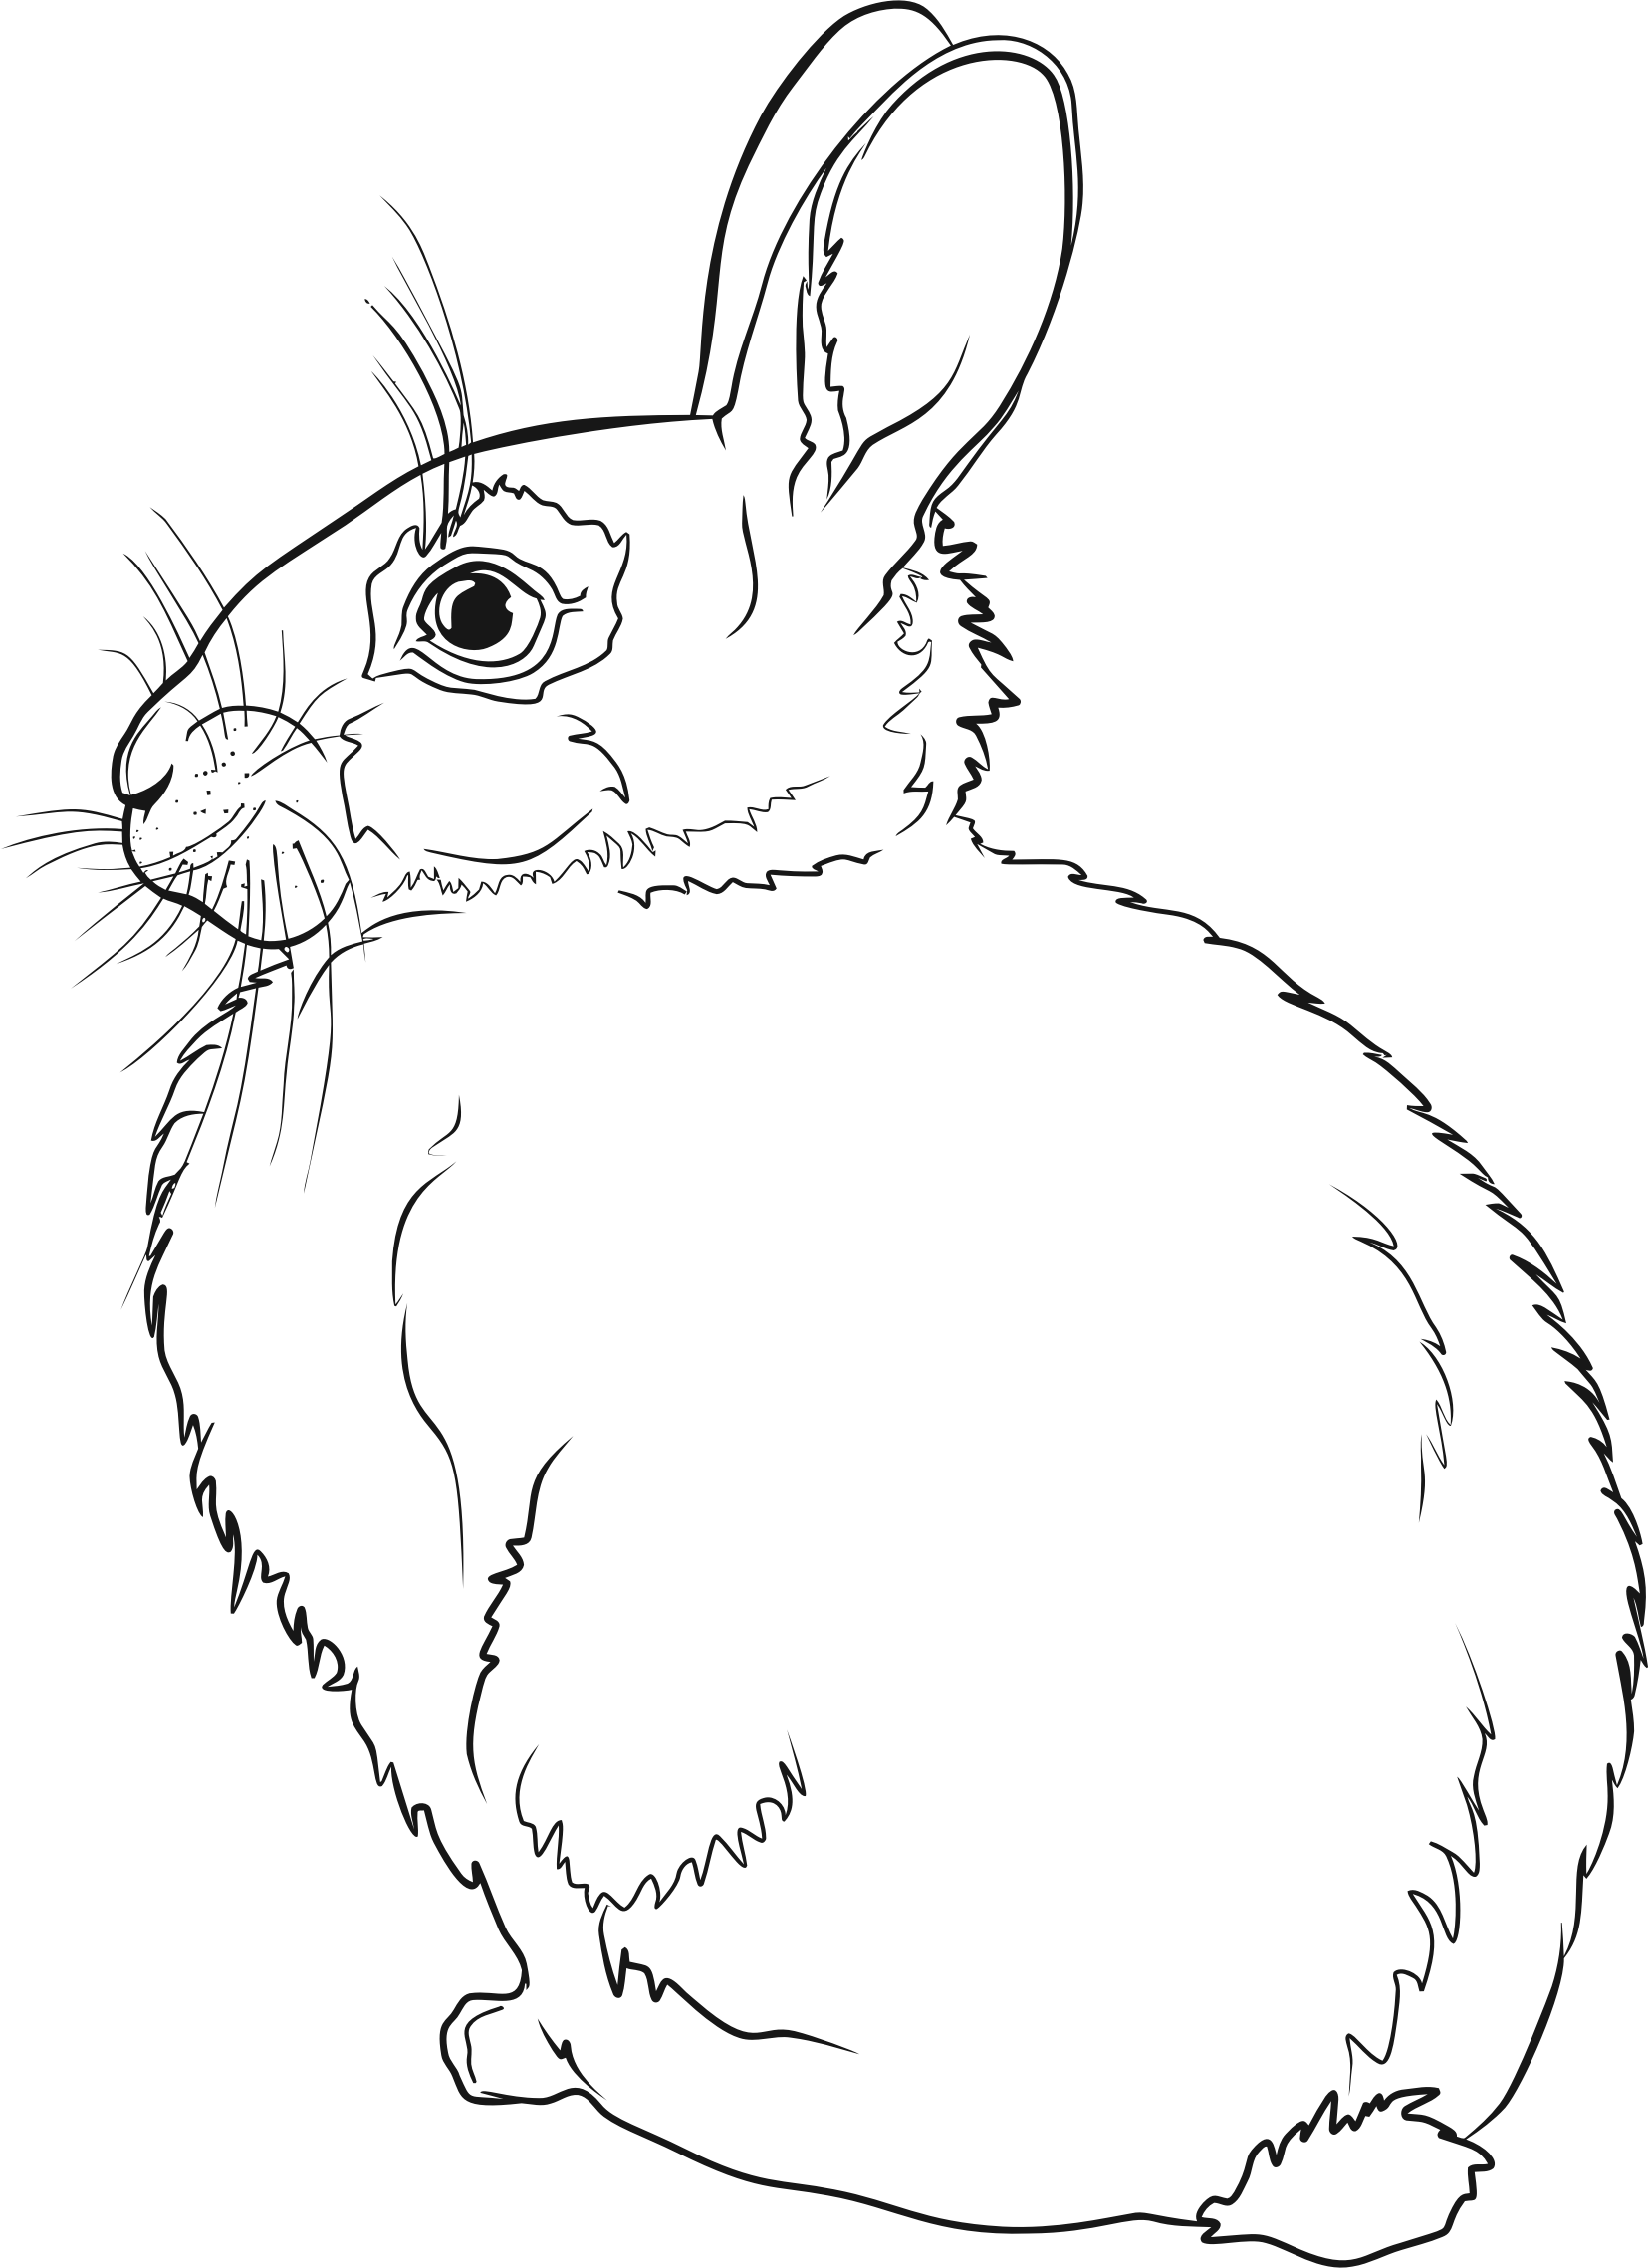 Rabbit Line Art by GDJ